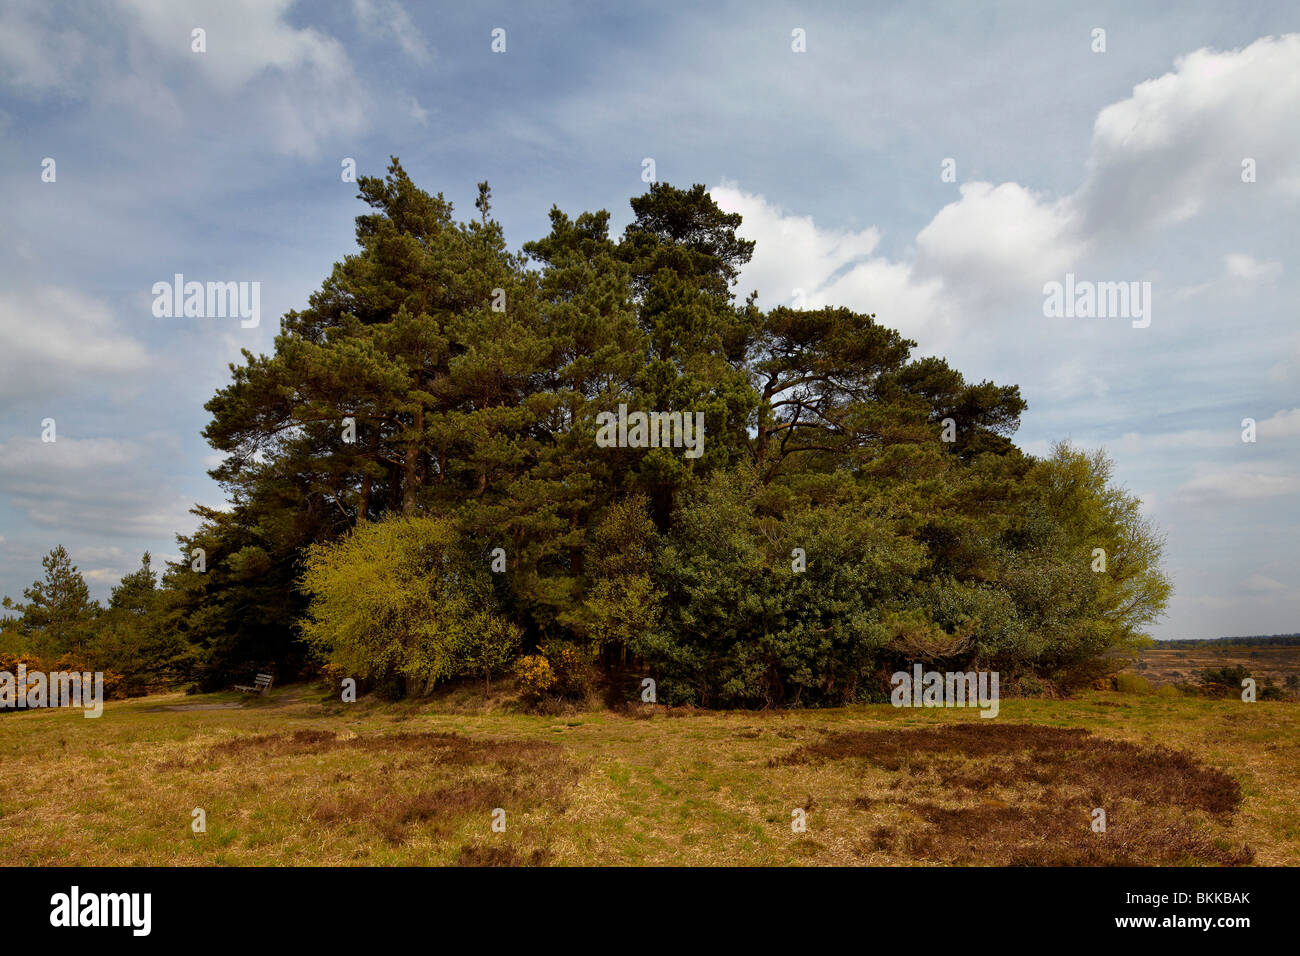 Gills Lap, Ashdown forest, England.The enchanted place at the top of the forest in the Winnie the Pooh stories by - Stock Image